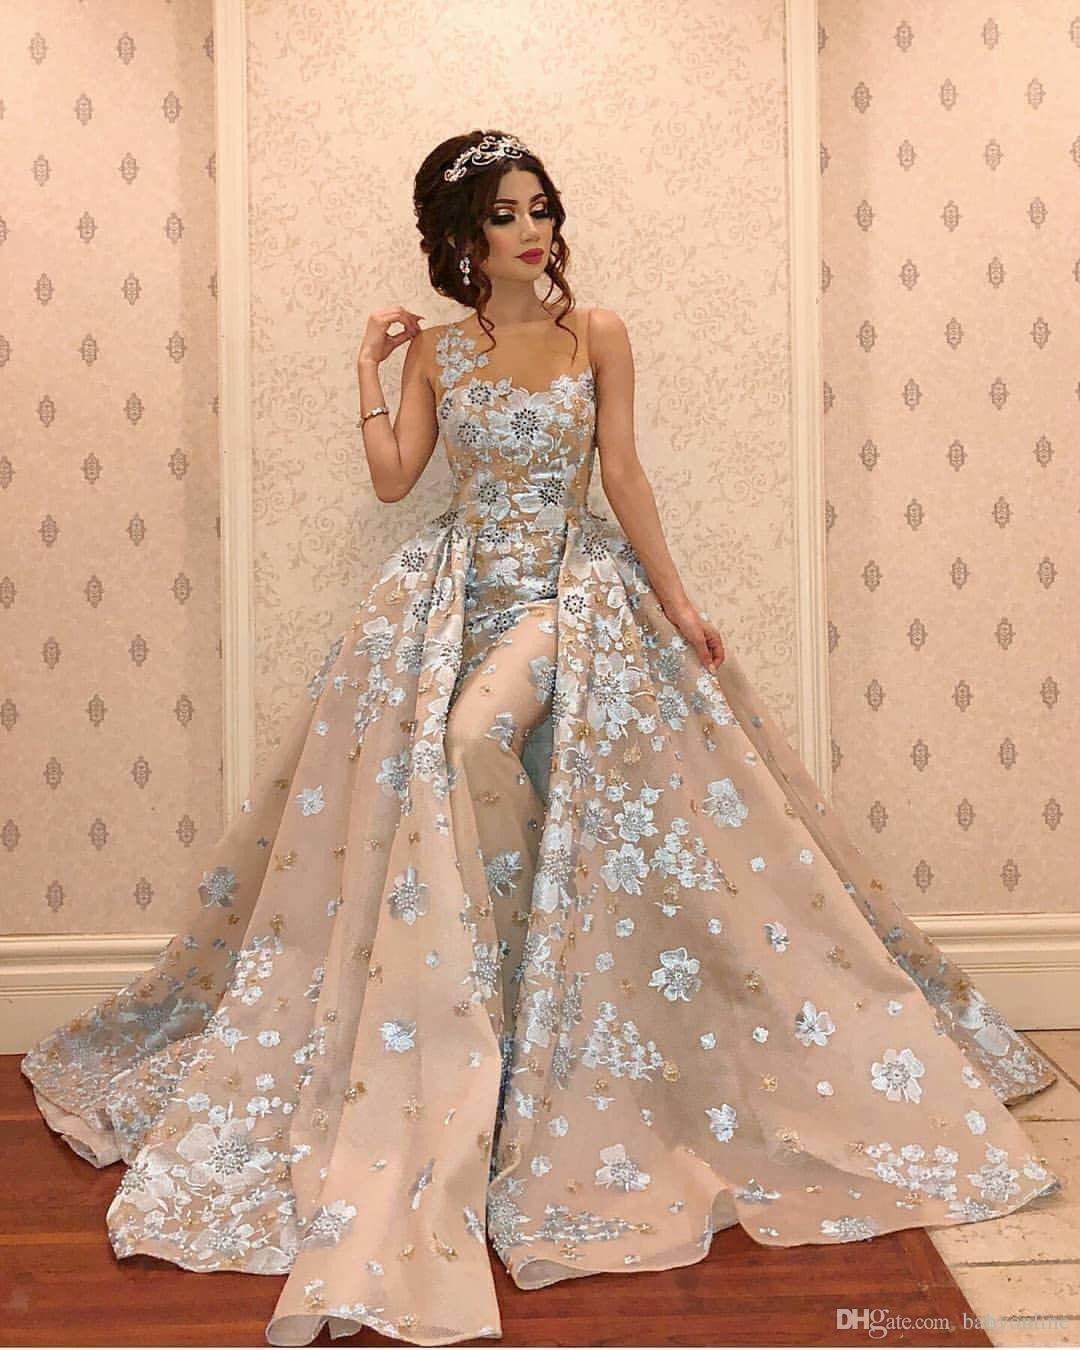 e6bce08b588 Luxury Mermaid Evening Dresses With Detachable Train Beads Lace Appliqued Prom  Gowns Elegant Formal Party Bridesmaid Pageant Dress BC1437 Best Evening ...